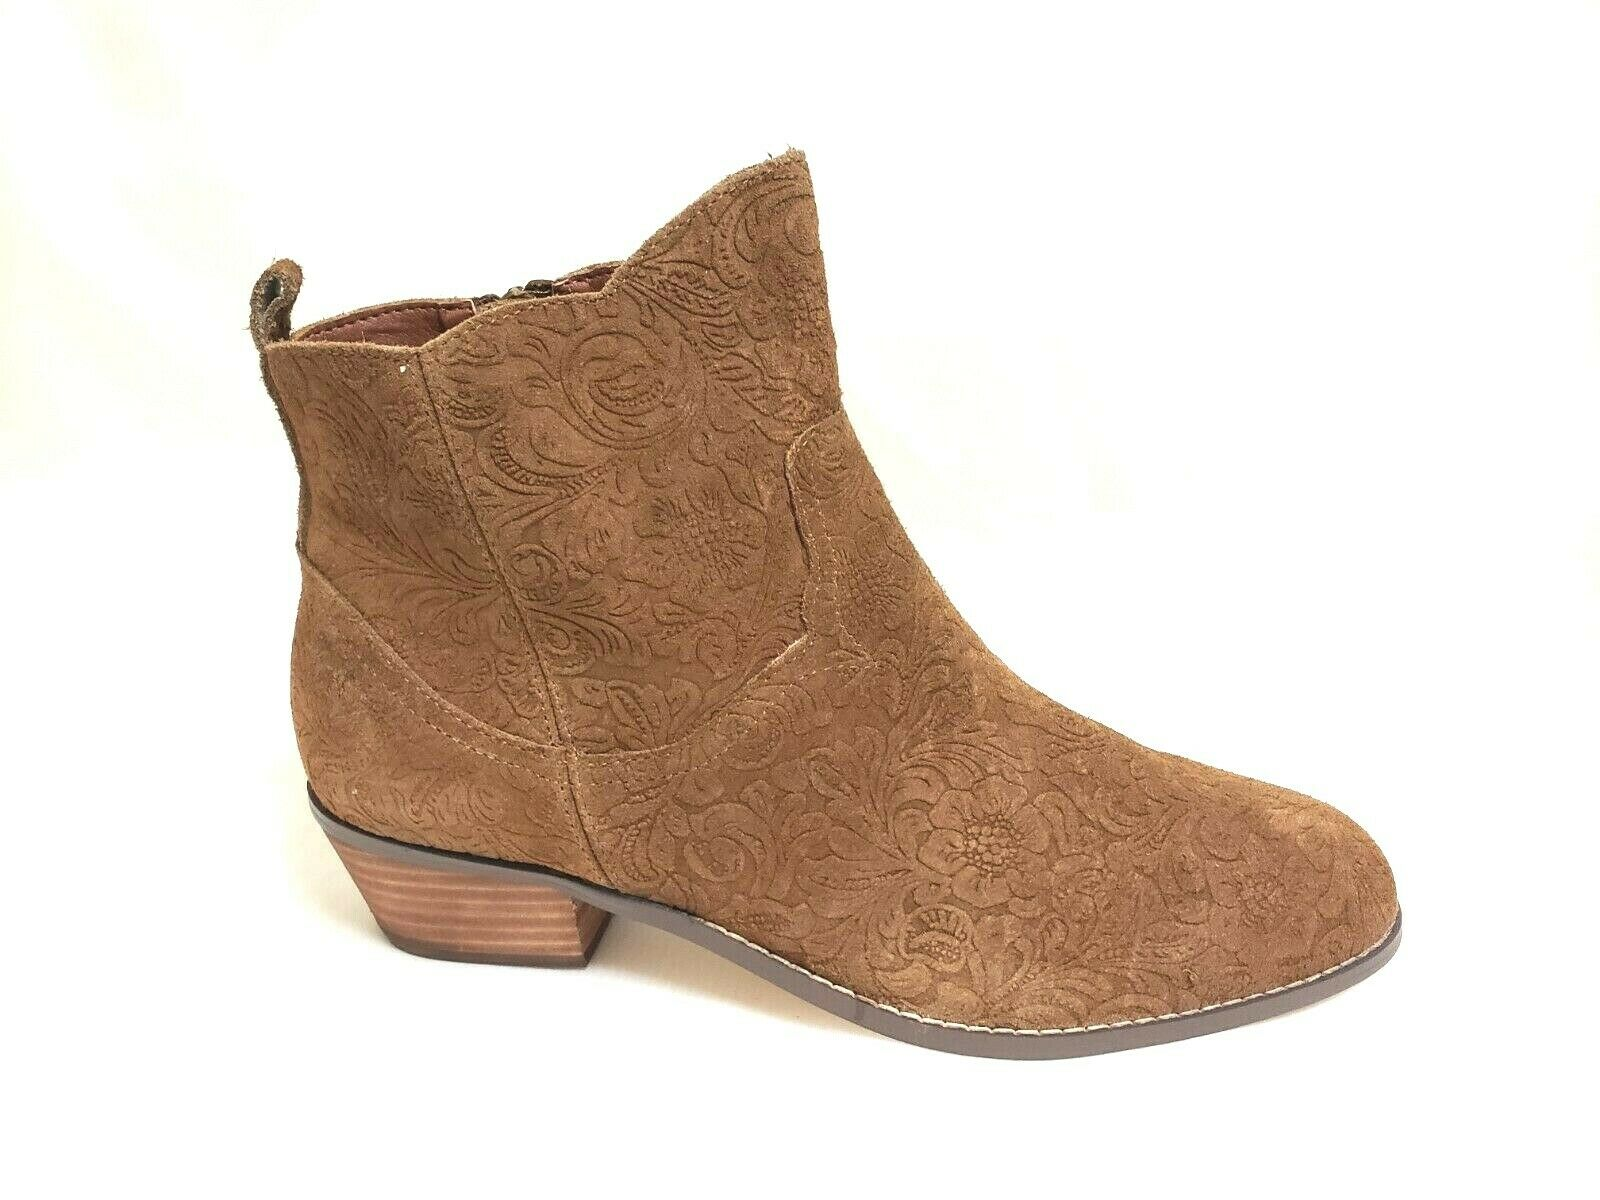 NEW  Women's YELLOW BOX EMBOSS Boot 40470 - Chestnut Chestnut Chestnut W141 sm aa6244